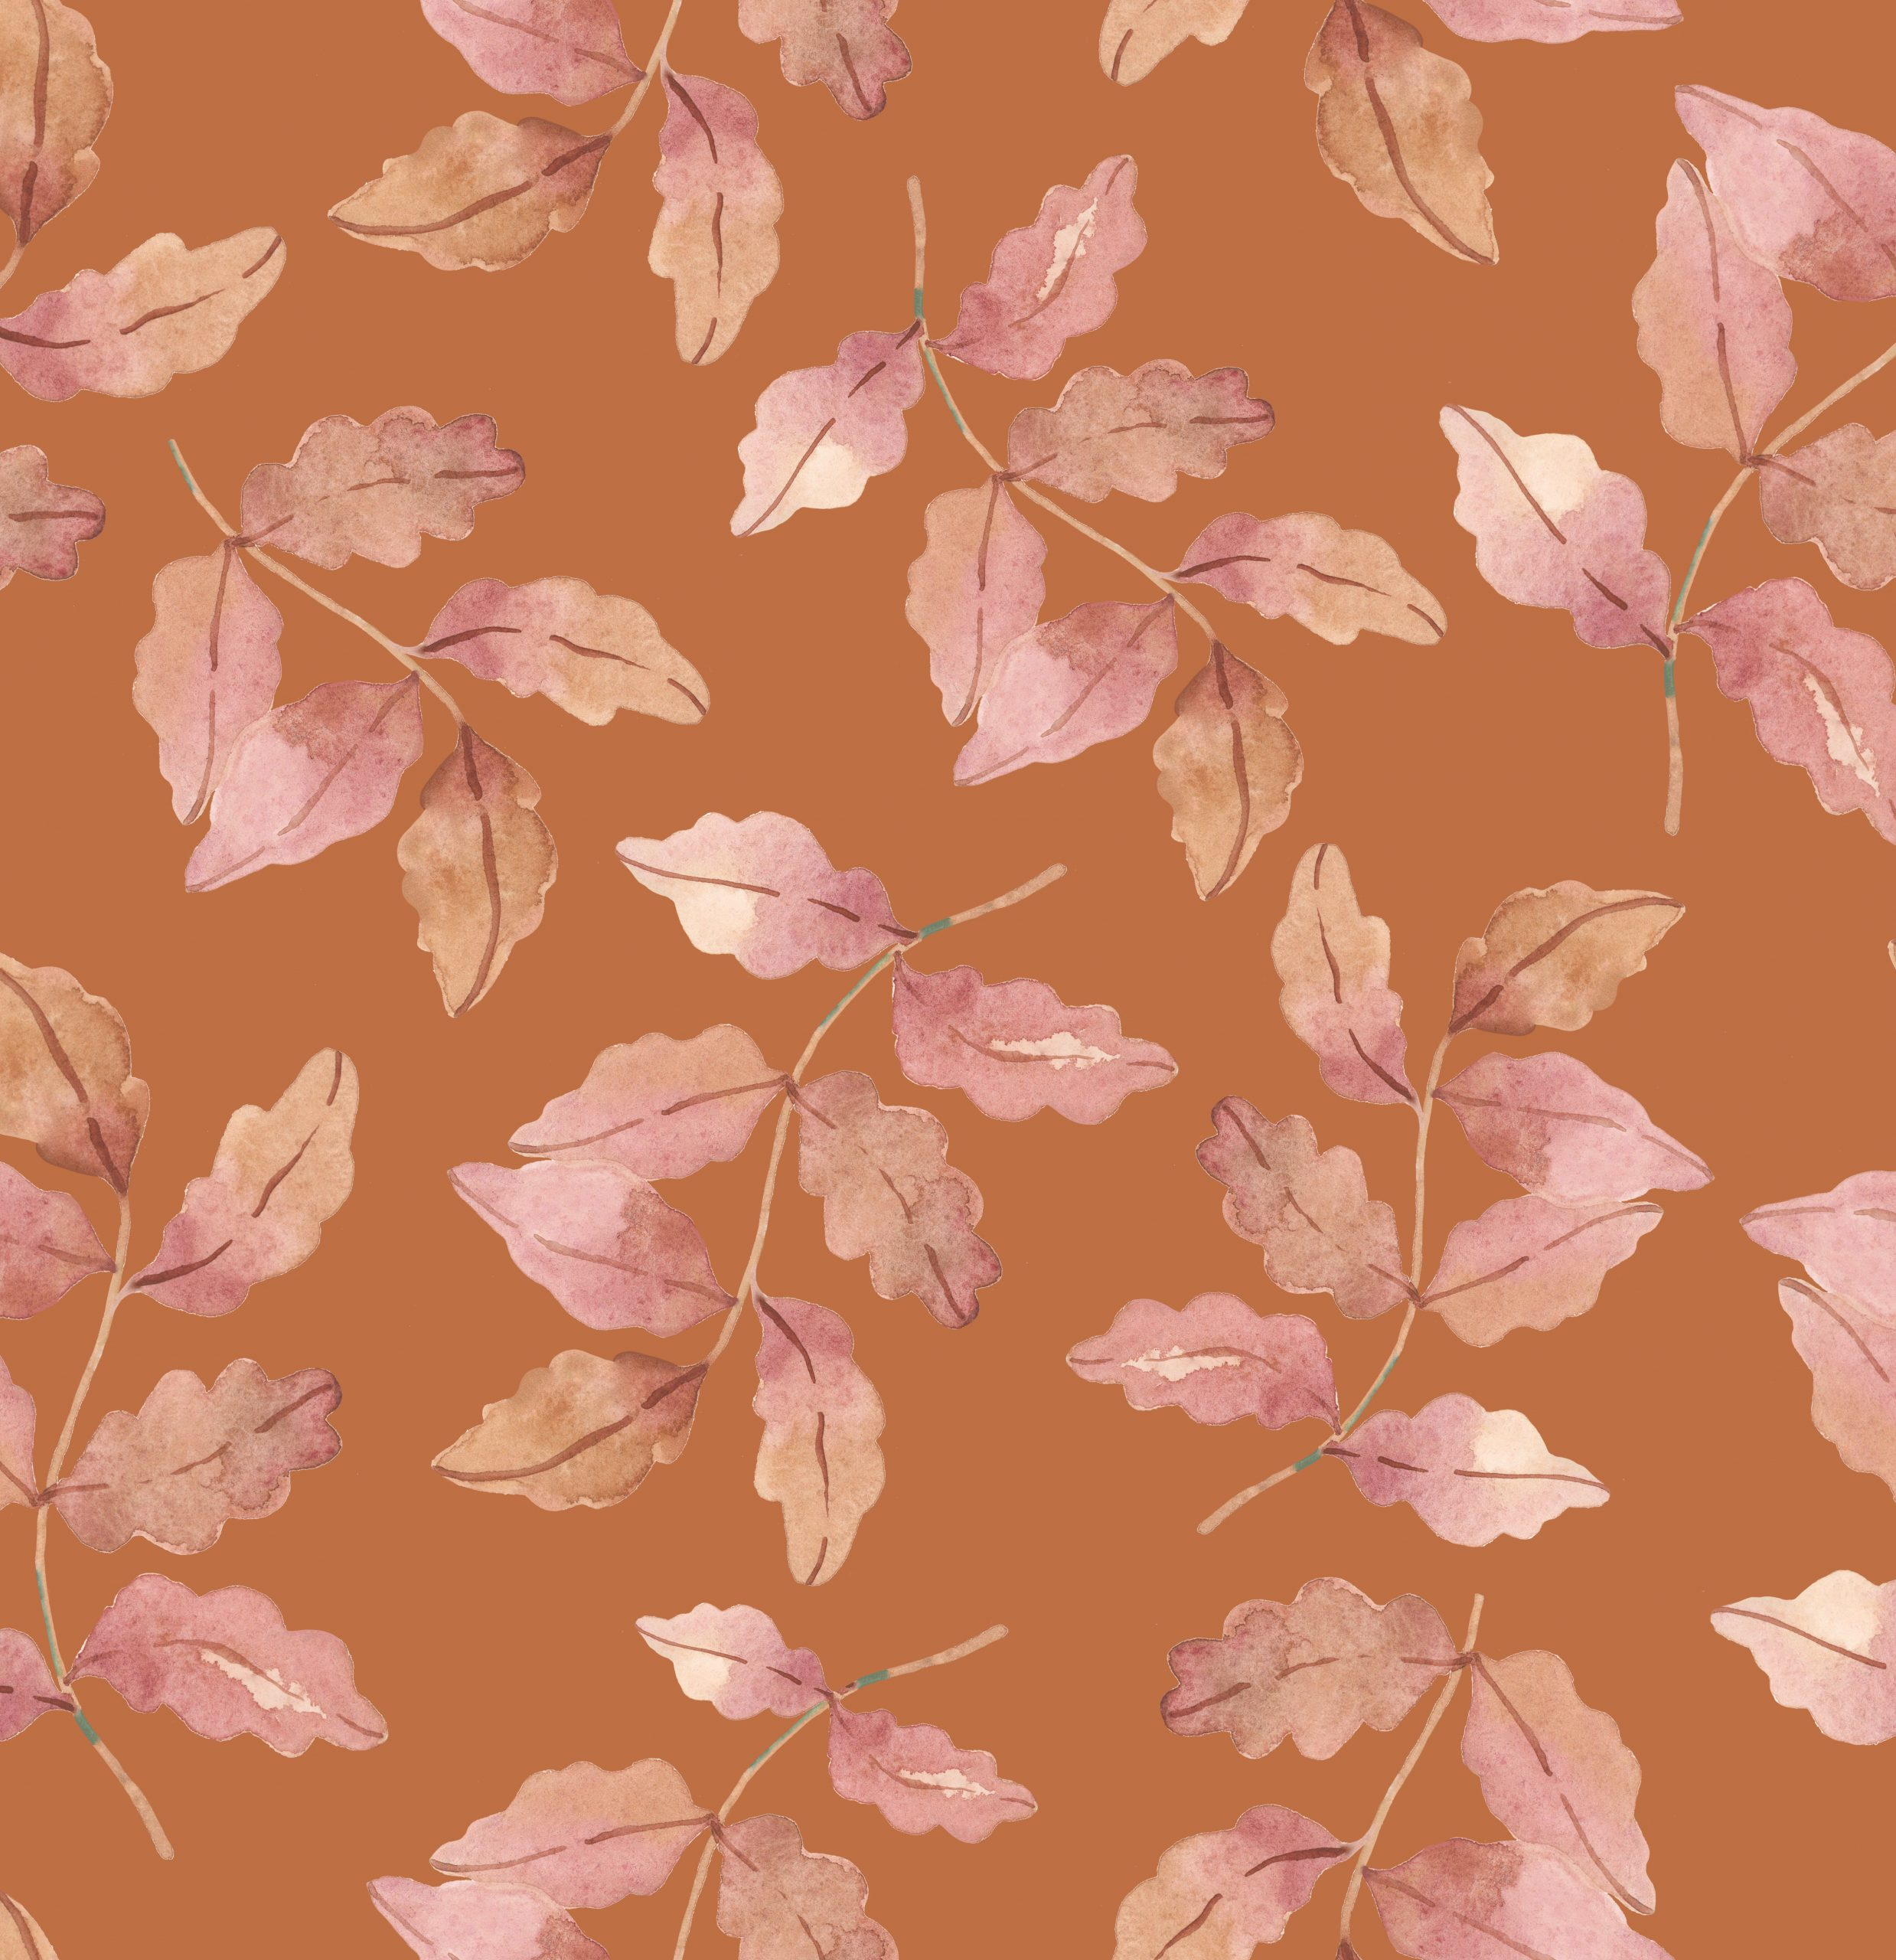 autumn leaves fabric wallpaper print luxury interior design